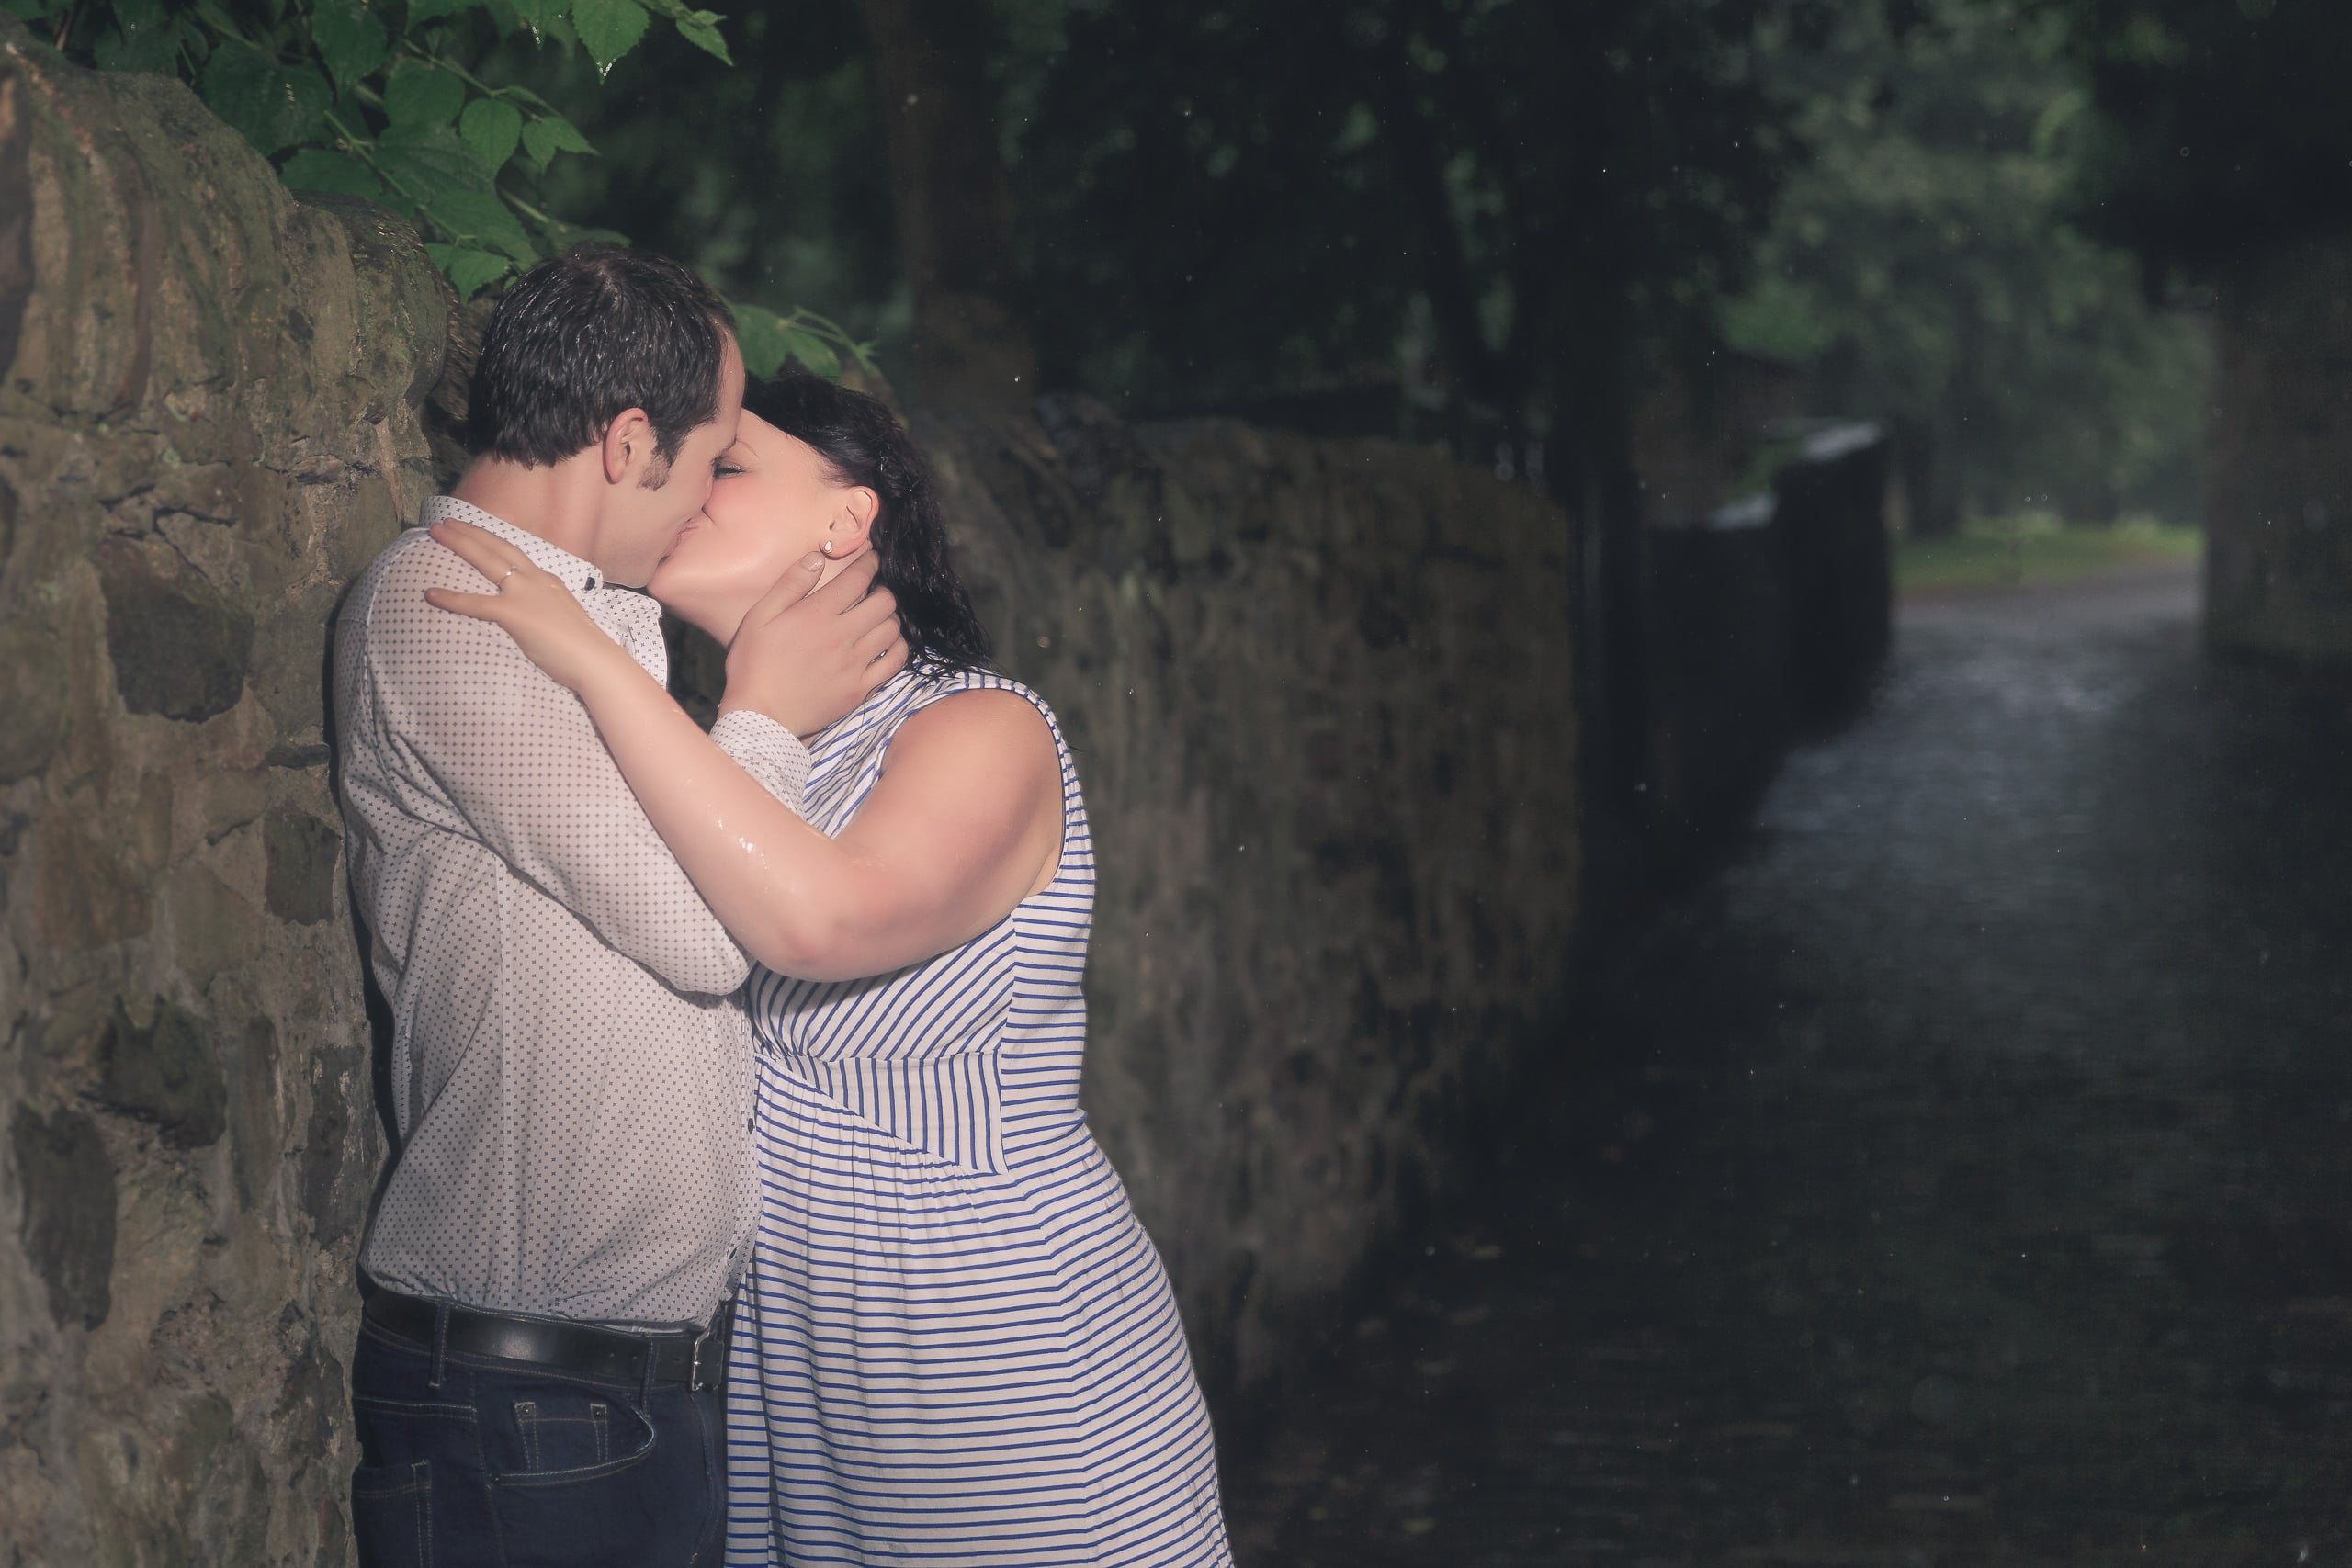 The couple is kissing on a street of edinburgh